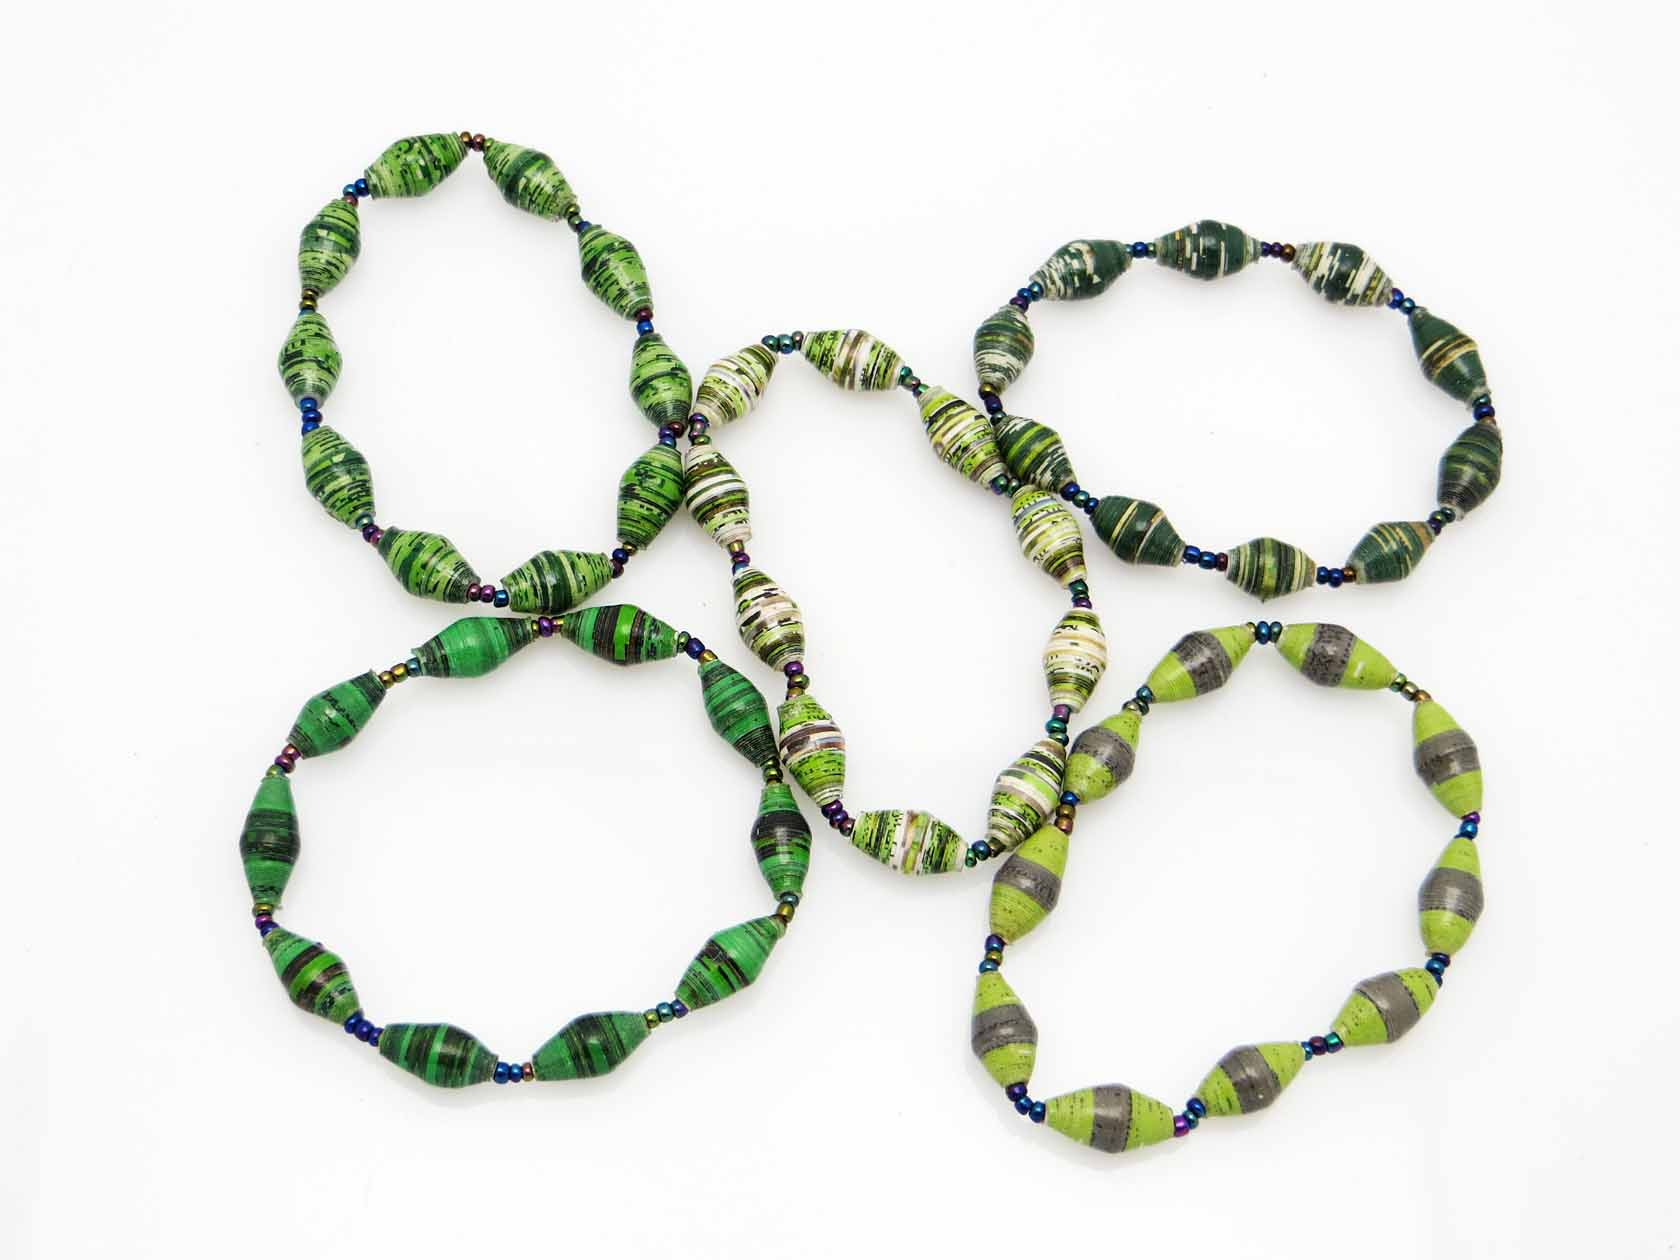 Bracelet - green-striped